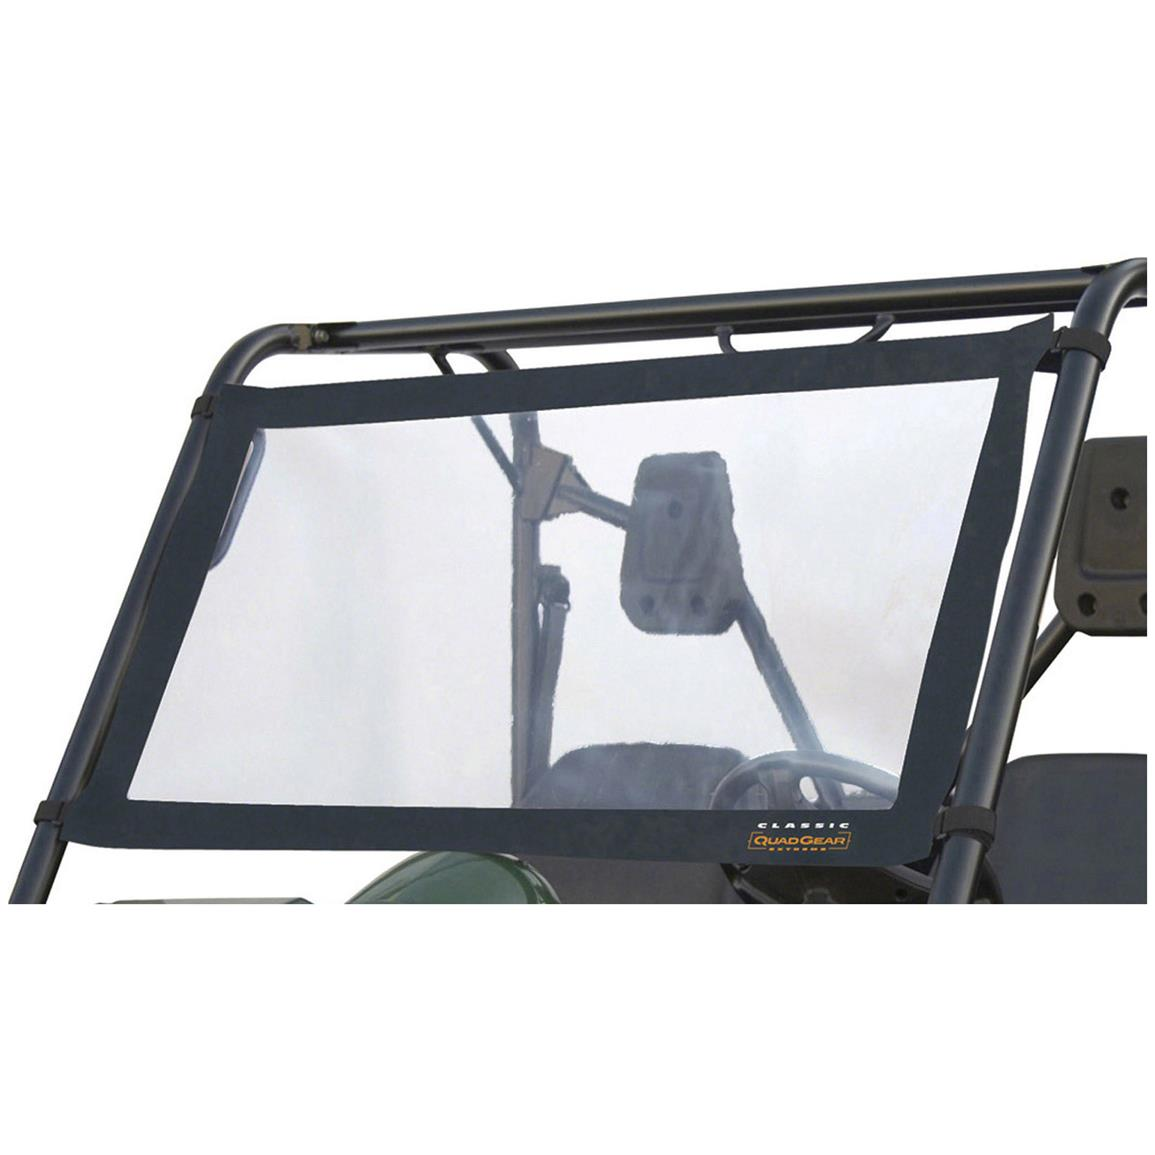 Fits in seconds to the roll cage of your UTV with cinch-tight straps and rip-and-grip closure tabs